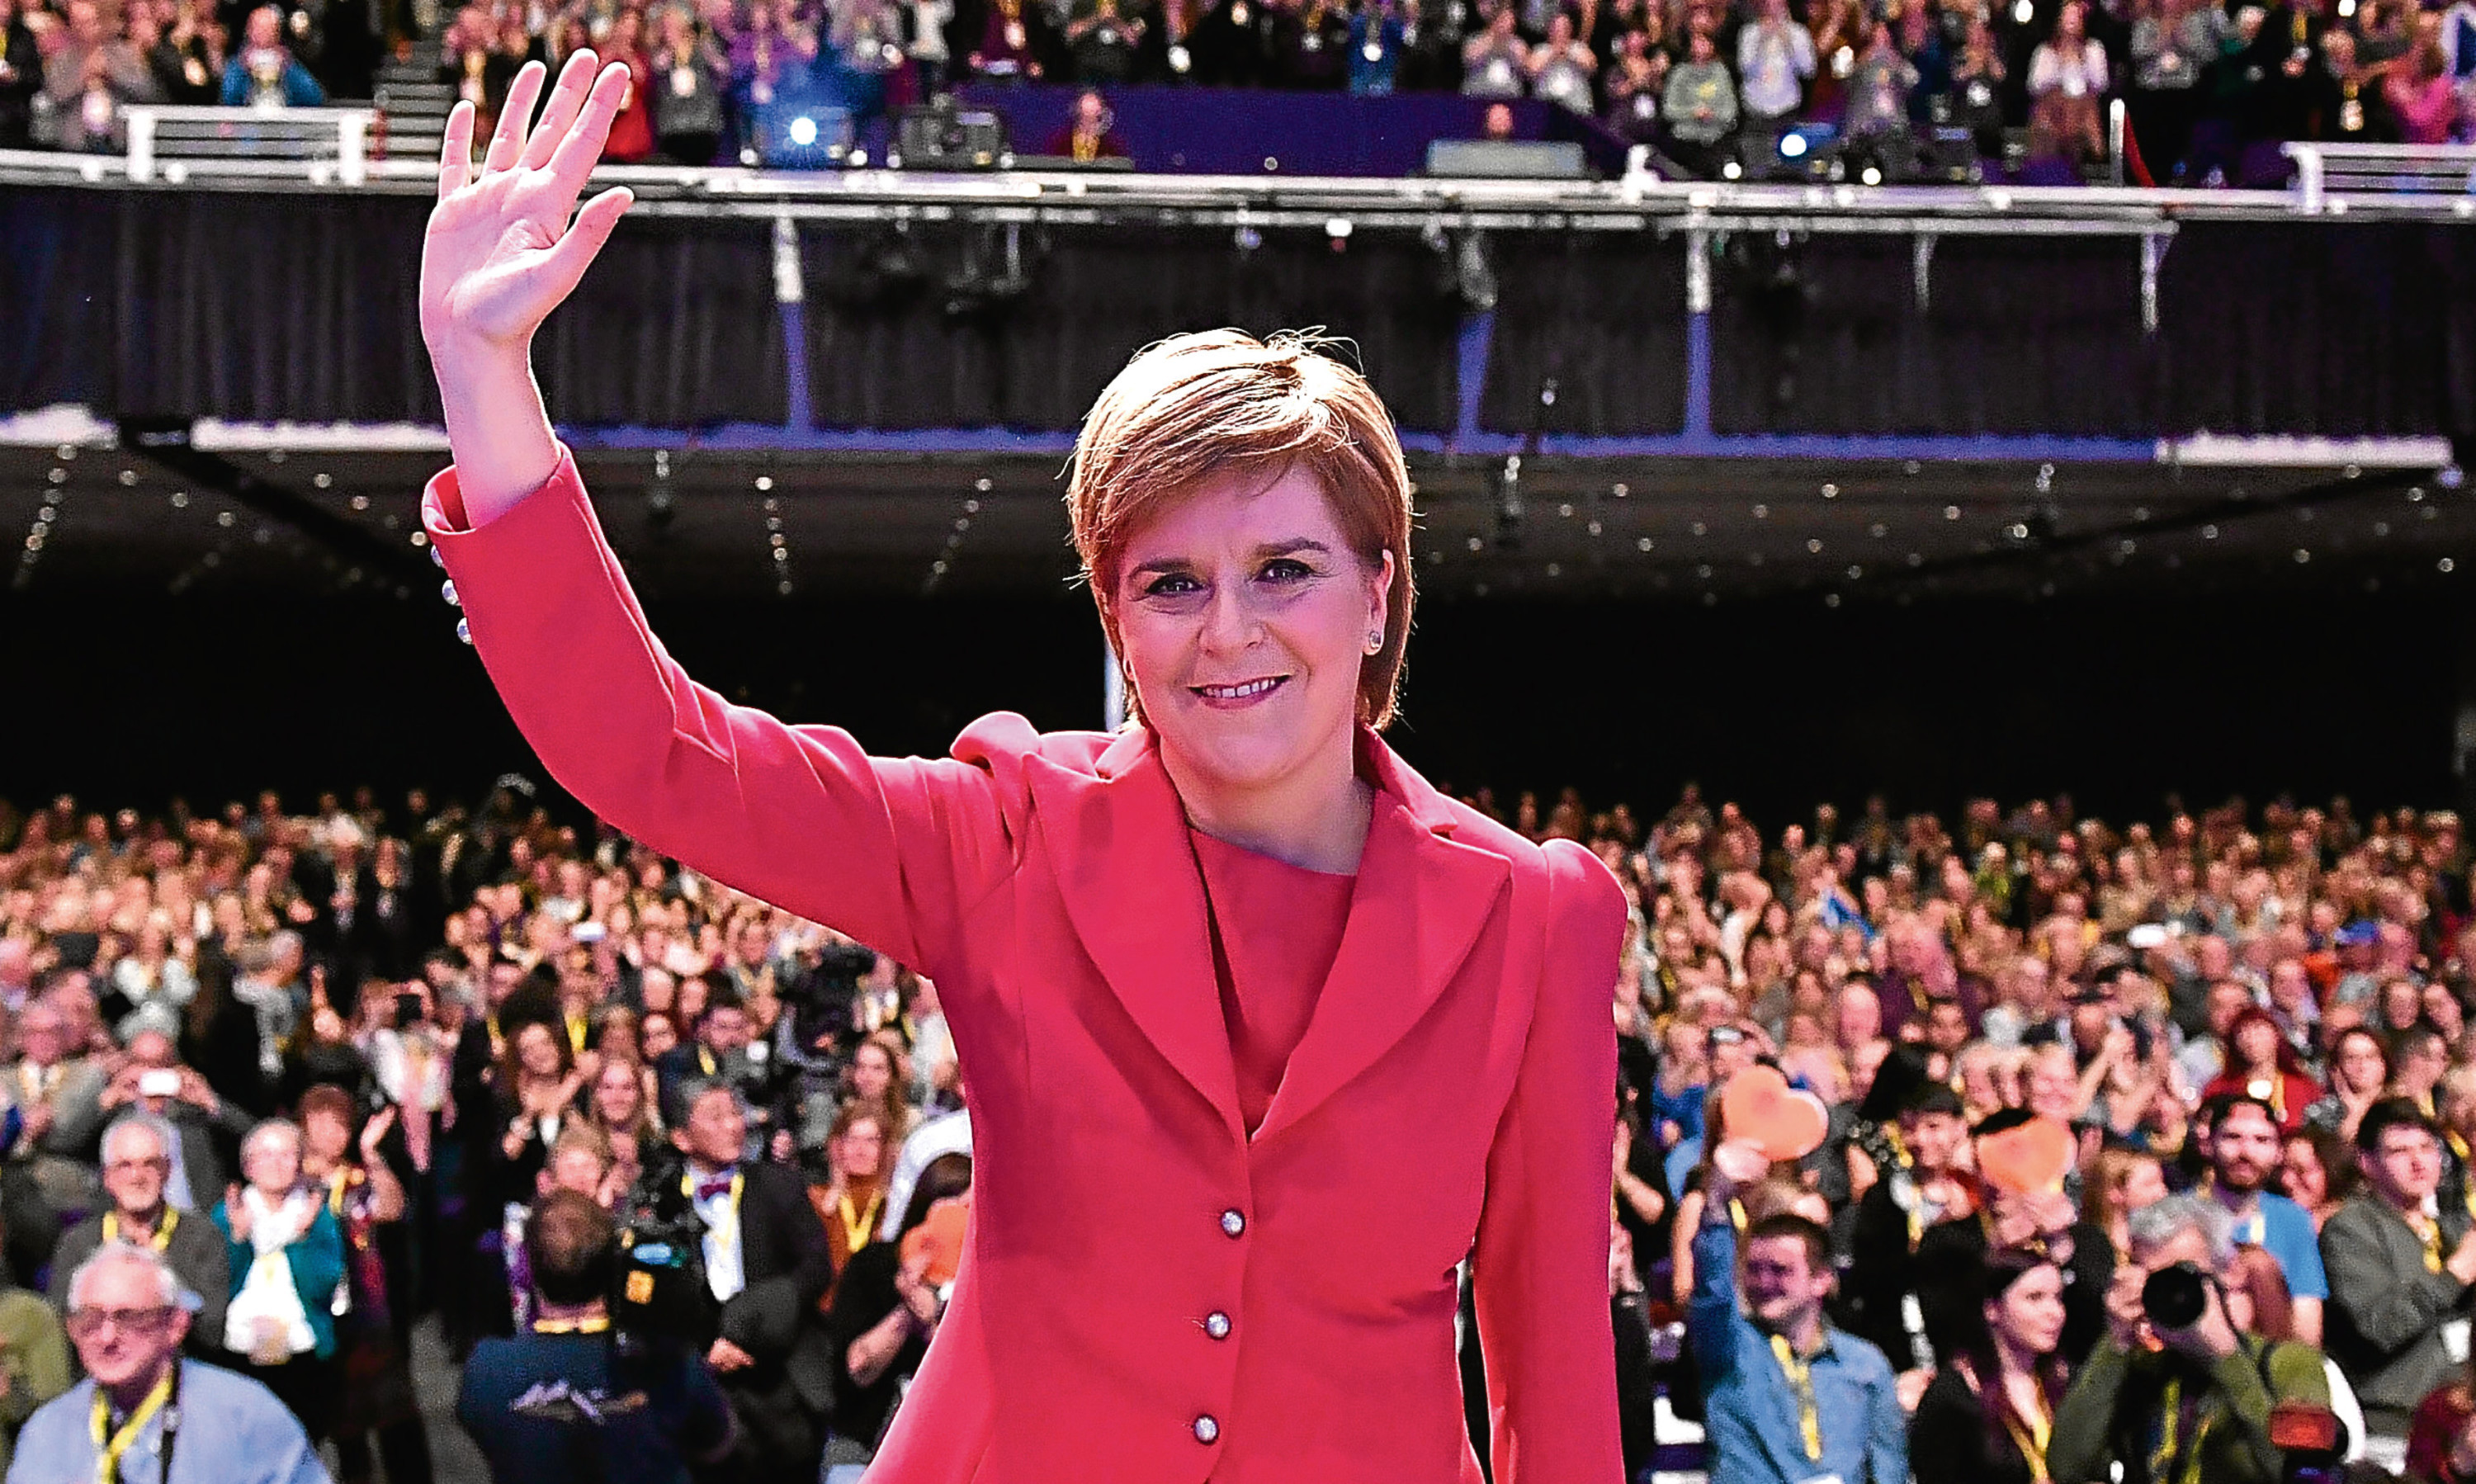 Applause for Nicola Sturgeon at the SNPs conference. But could there be trouble ahead from factions within her own party?